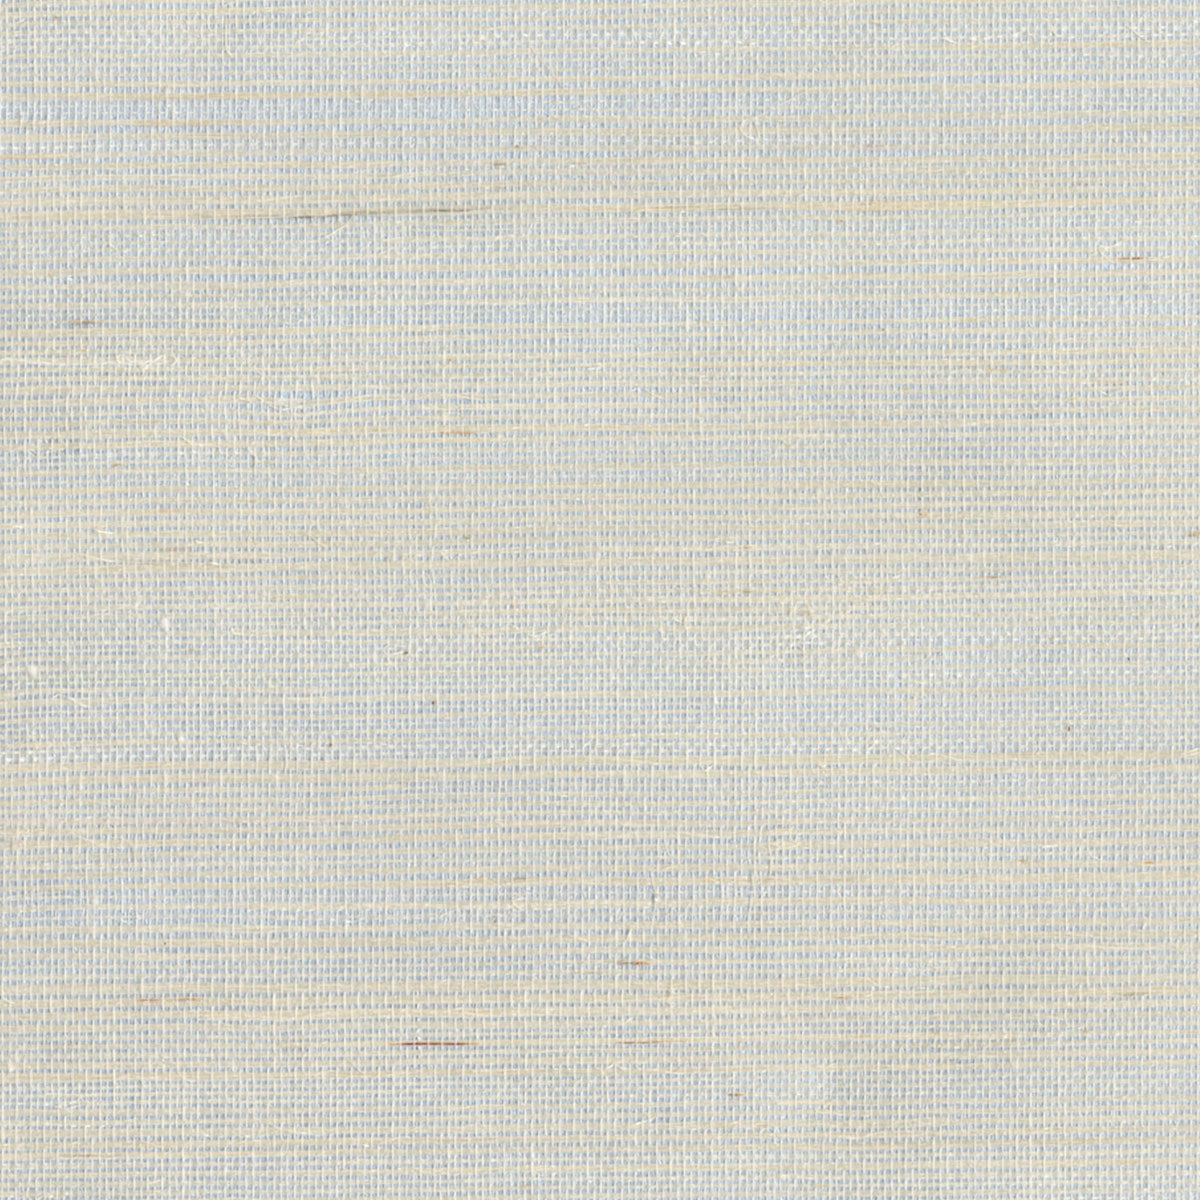 Candice Olson Tranquil Impresssion Wallpaper (Grasscloth)